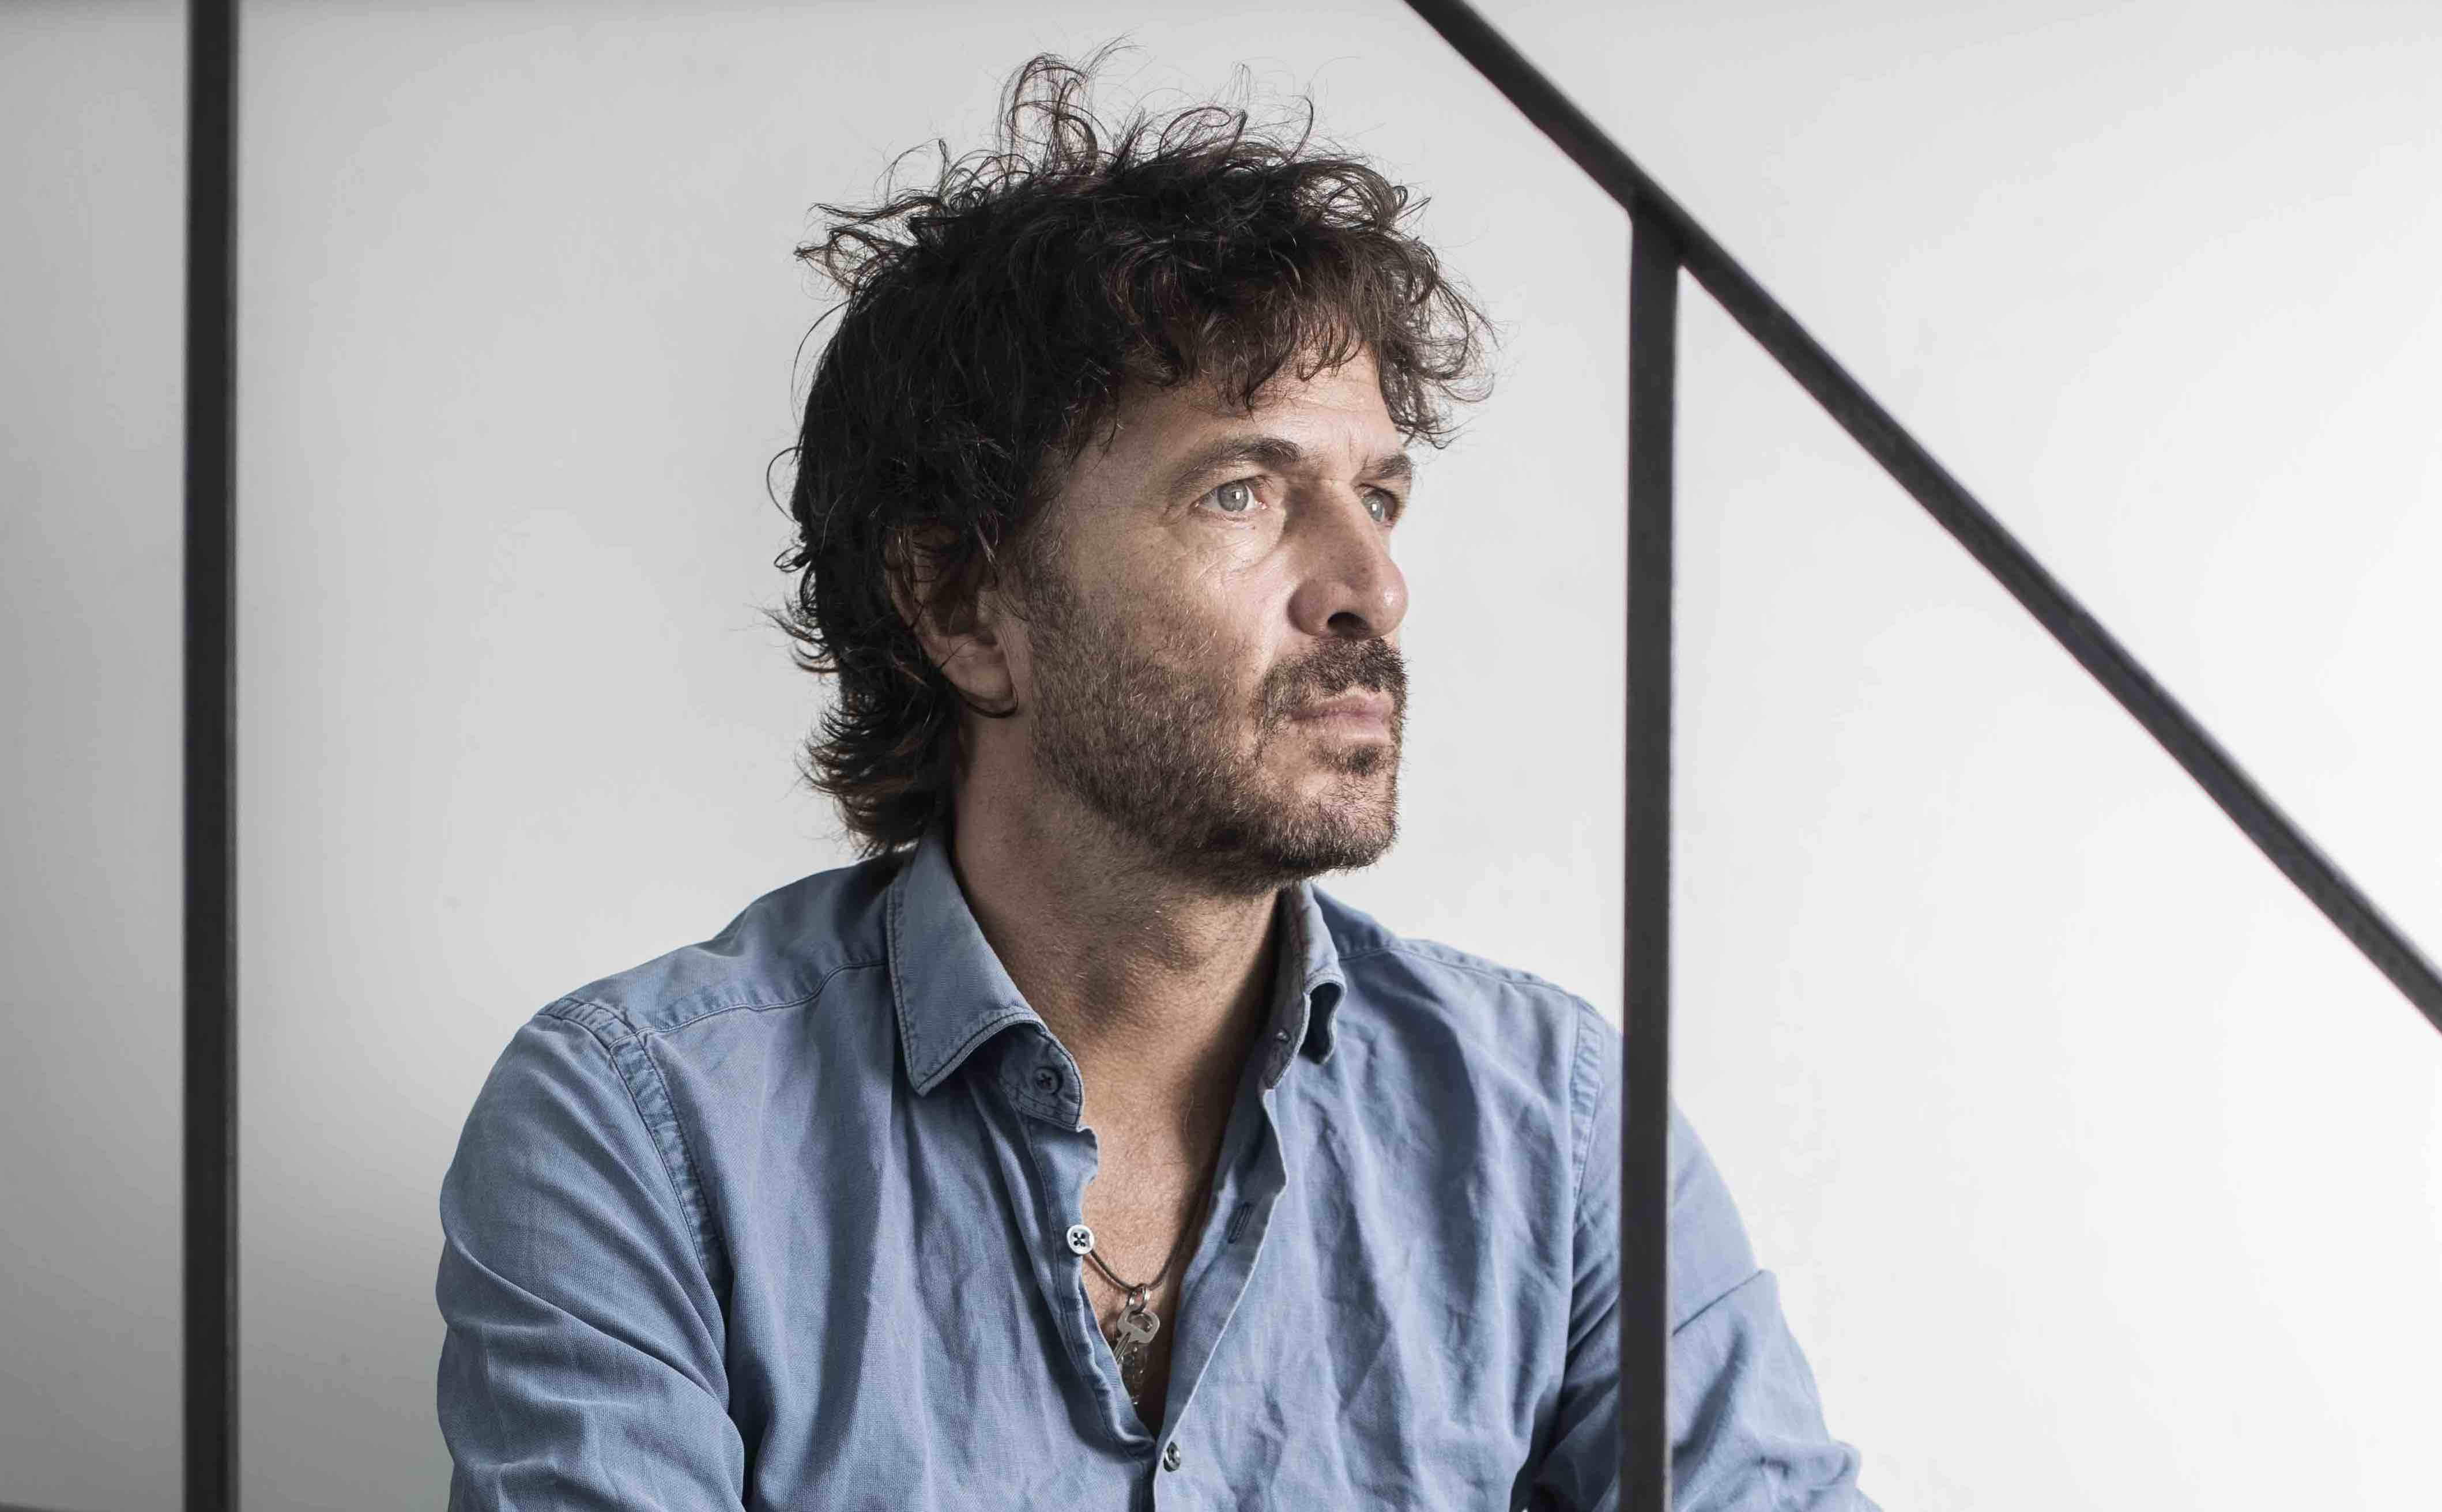 Remembering Philippe Zdar, Cassius and 20 years of the French Touch